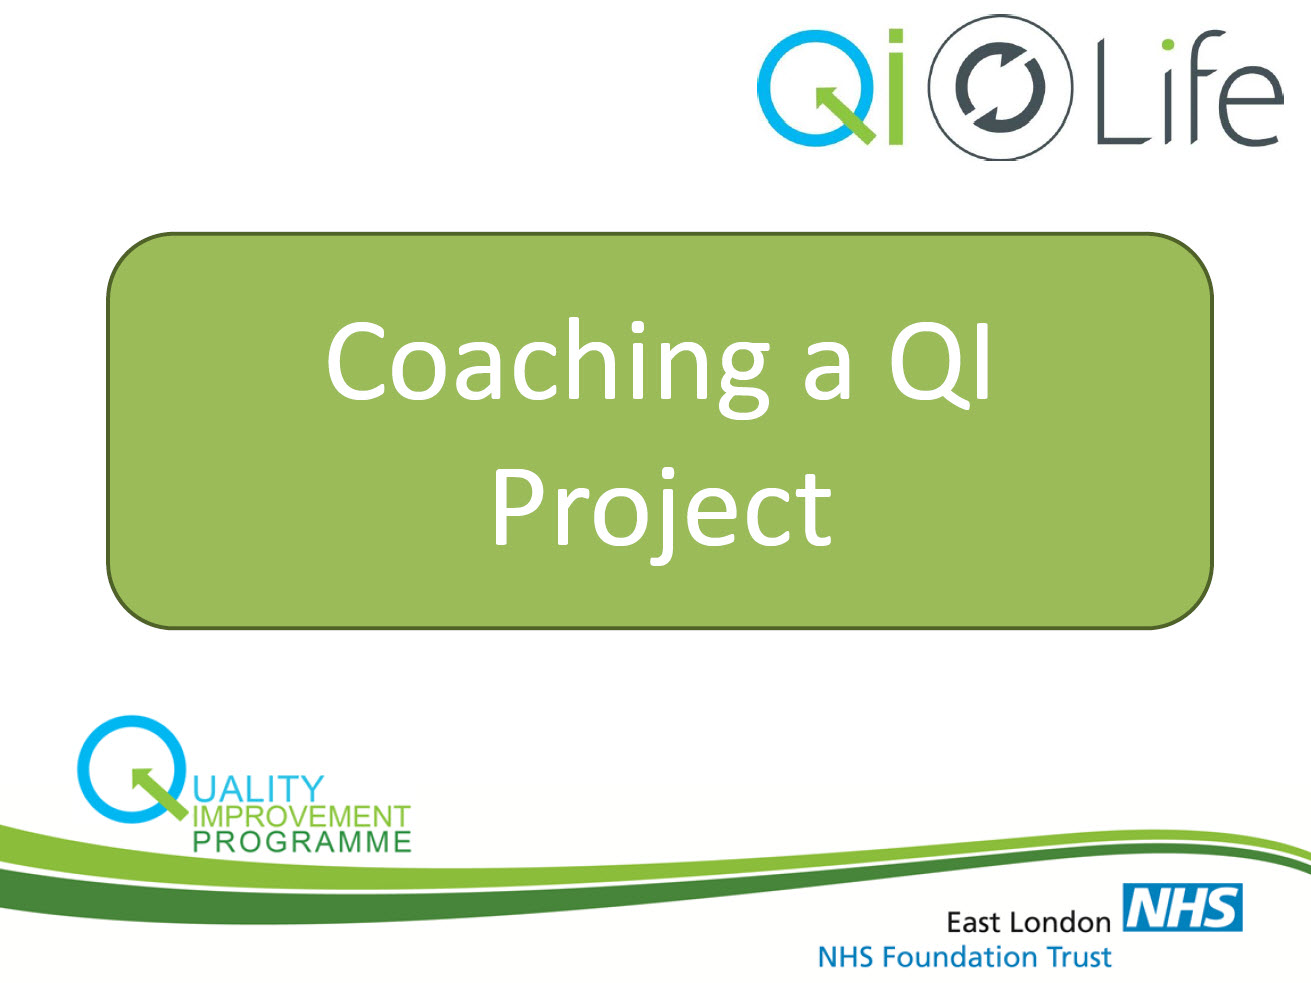 Coaching a QI Project